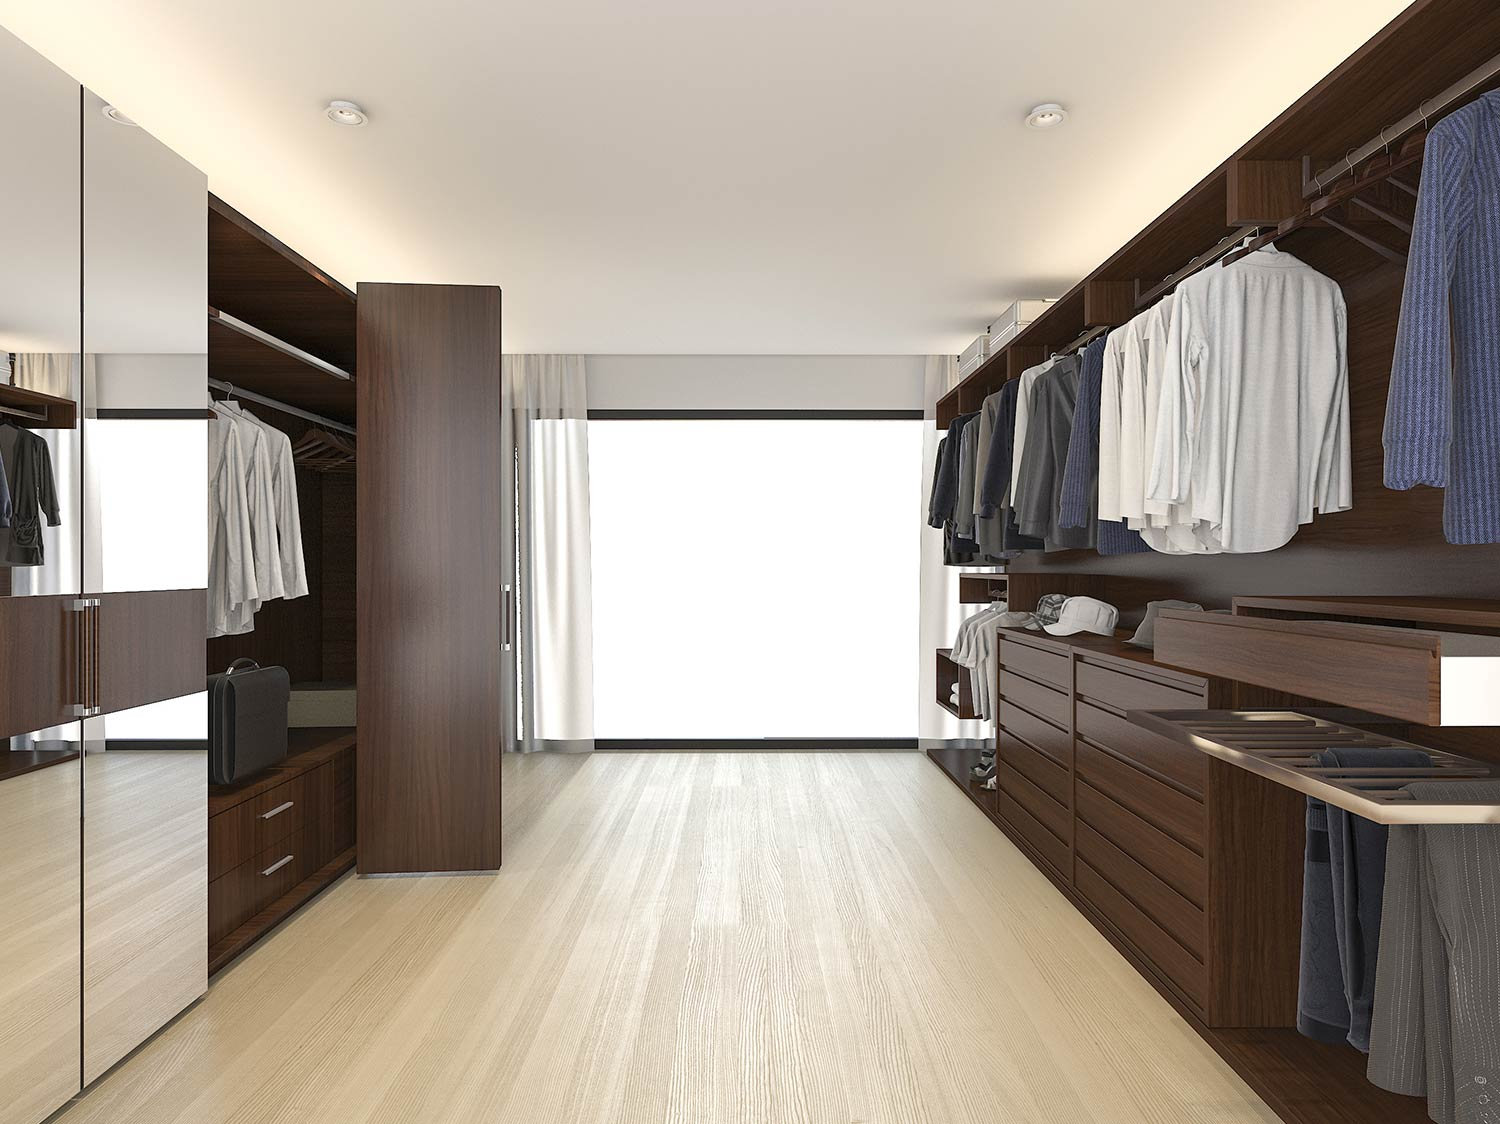 Large designer walnut walk in wardrobe with various storage solutions as well as mirrored doors hiding some areas of the wardrobe. Pull out trouser storage and handle-less draws make this the perfect space.